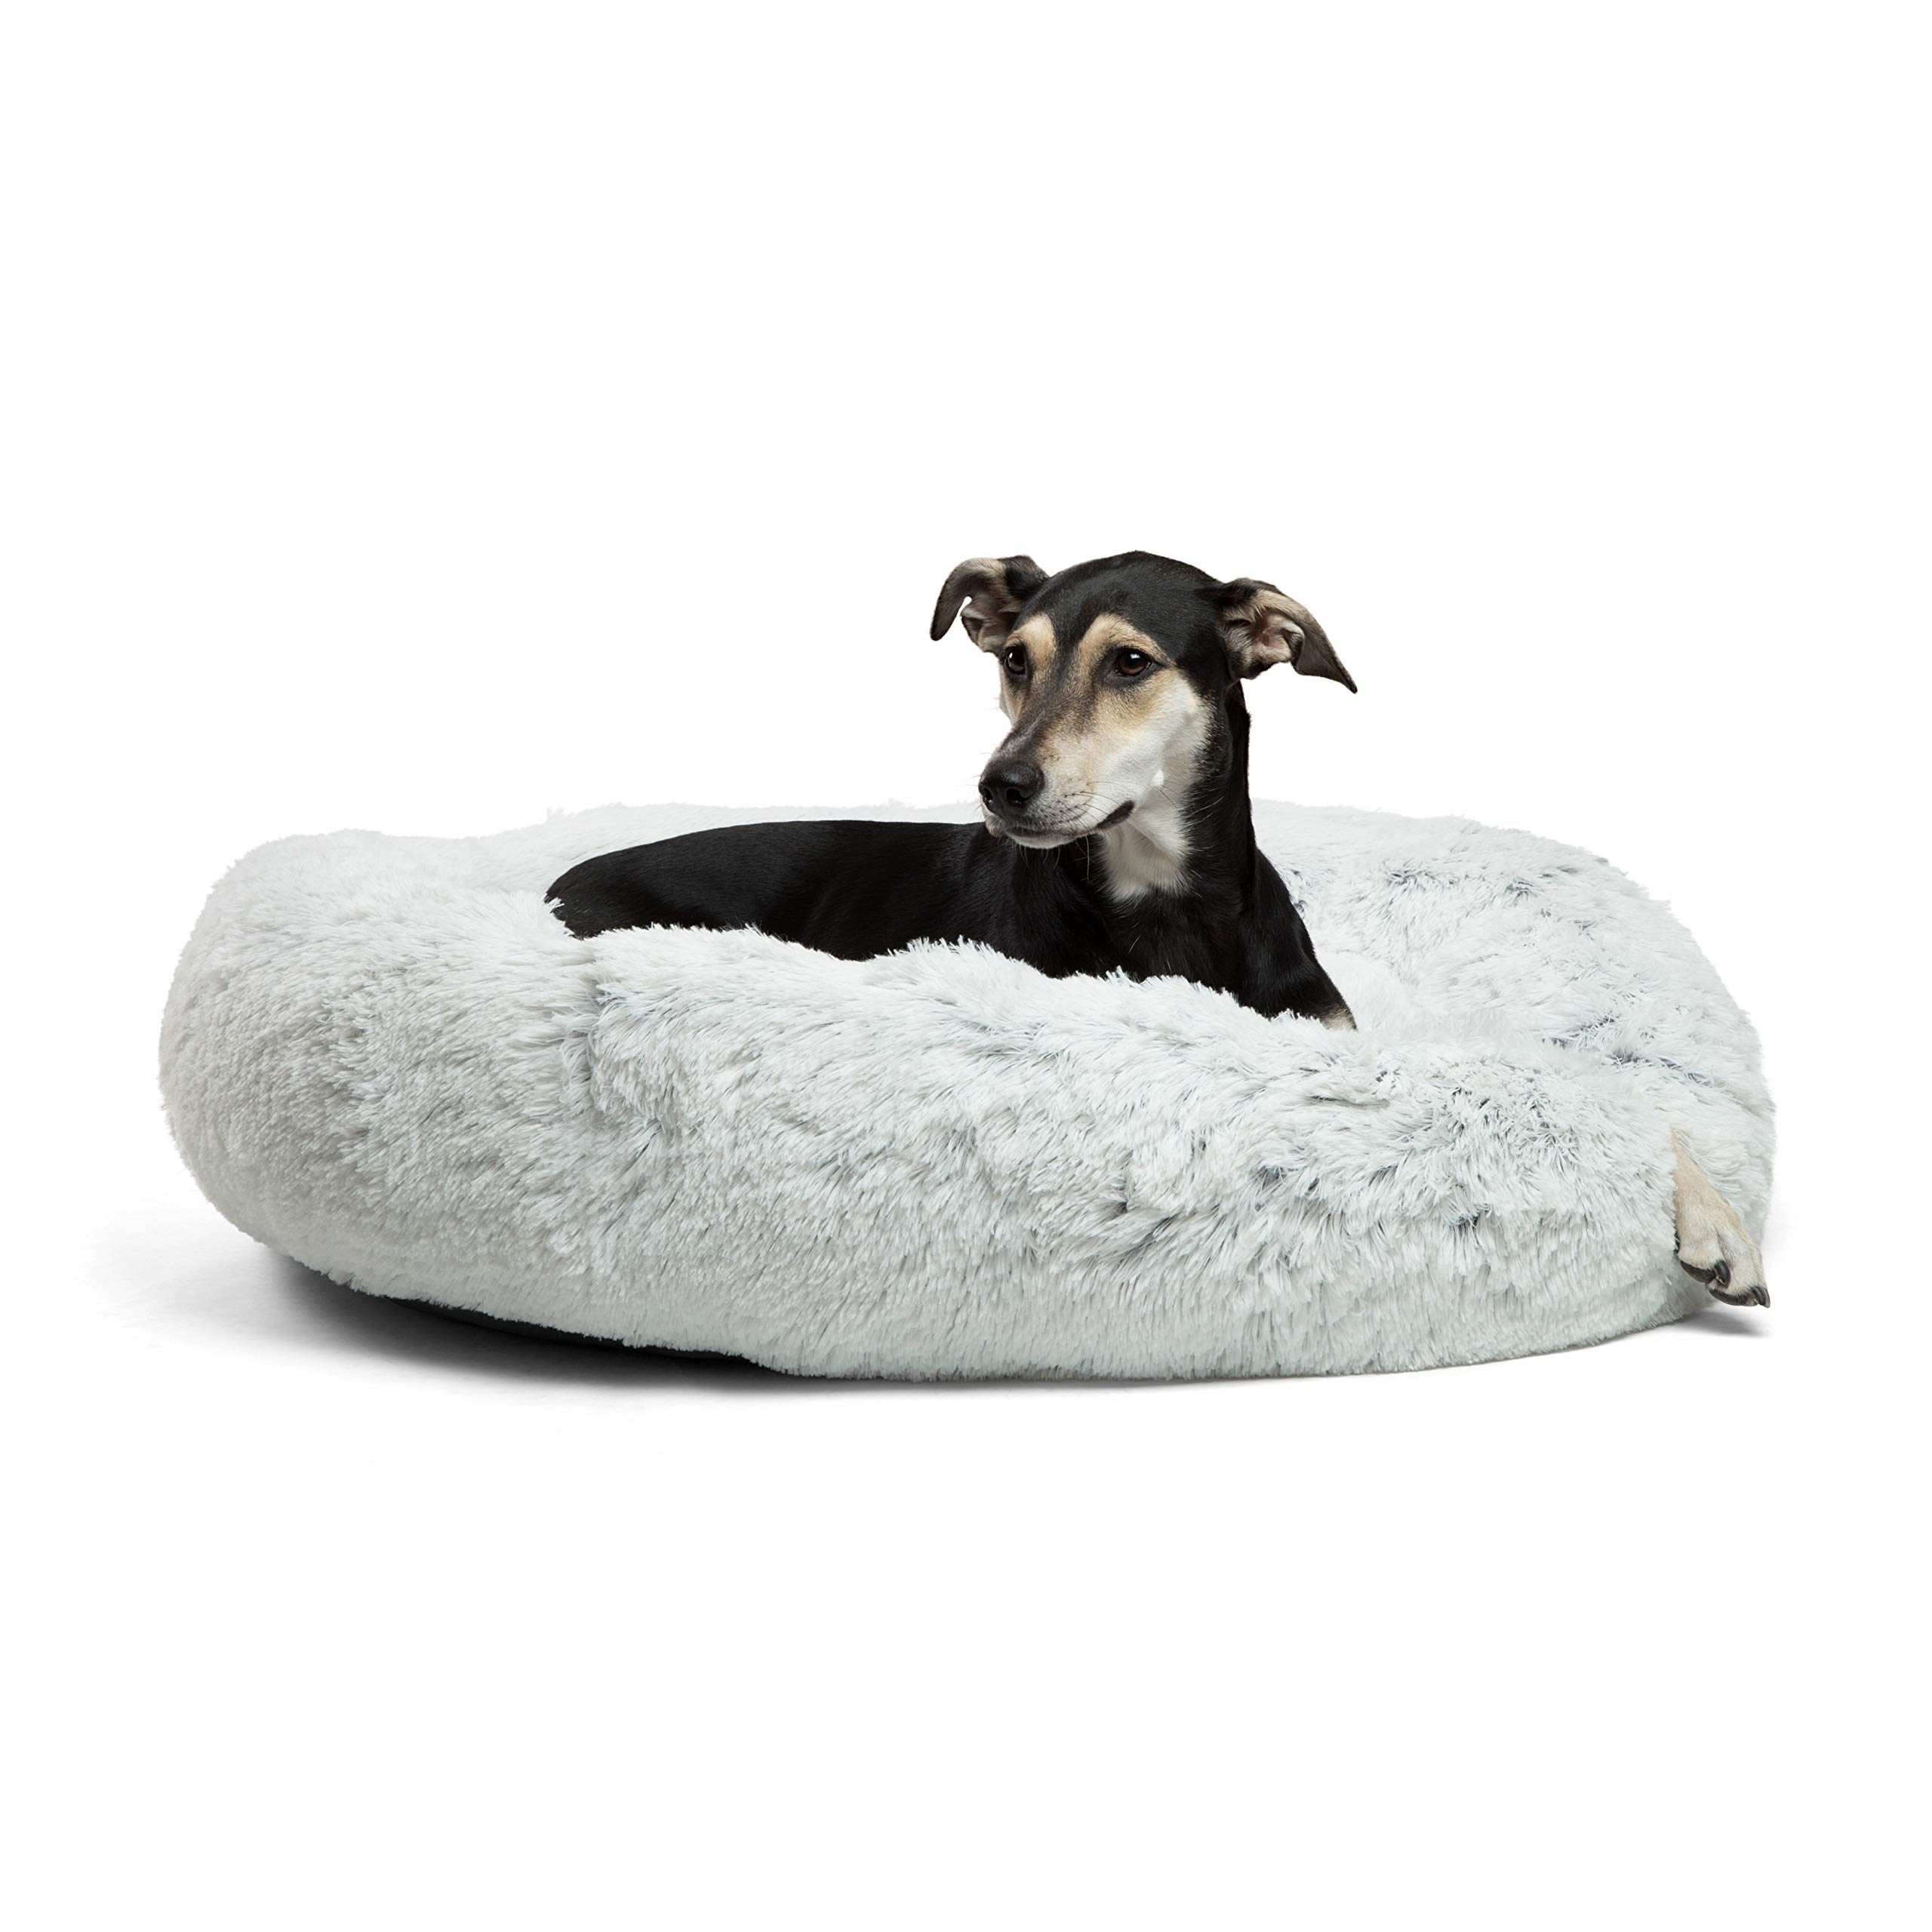 Best Friends by Sheri Calming Shag Vegan Fur Donut Cuddler (36x36, Zippered) - Large Round Donut Cat and Dog Cushion Bed, Removable Shell, Warming and Cozy for Improved Sleep - for Pets Up to 100 lbs by Best Friends by Sheri